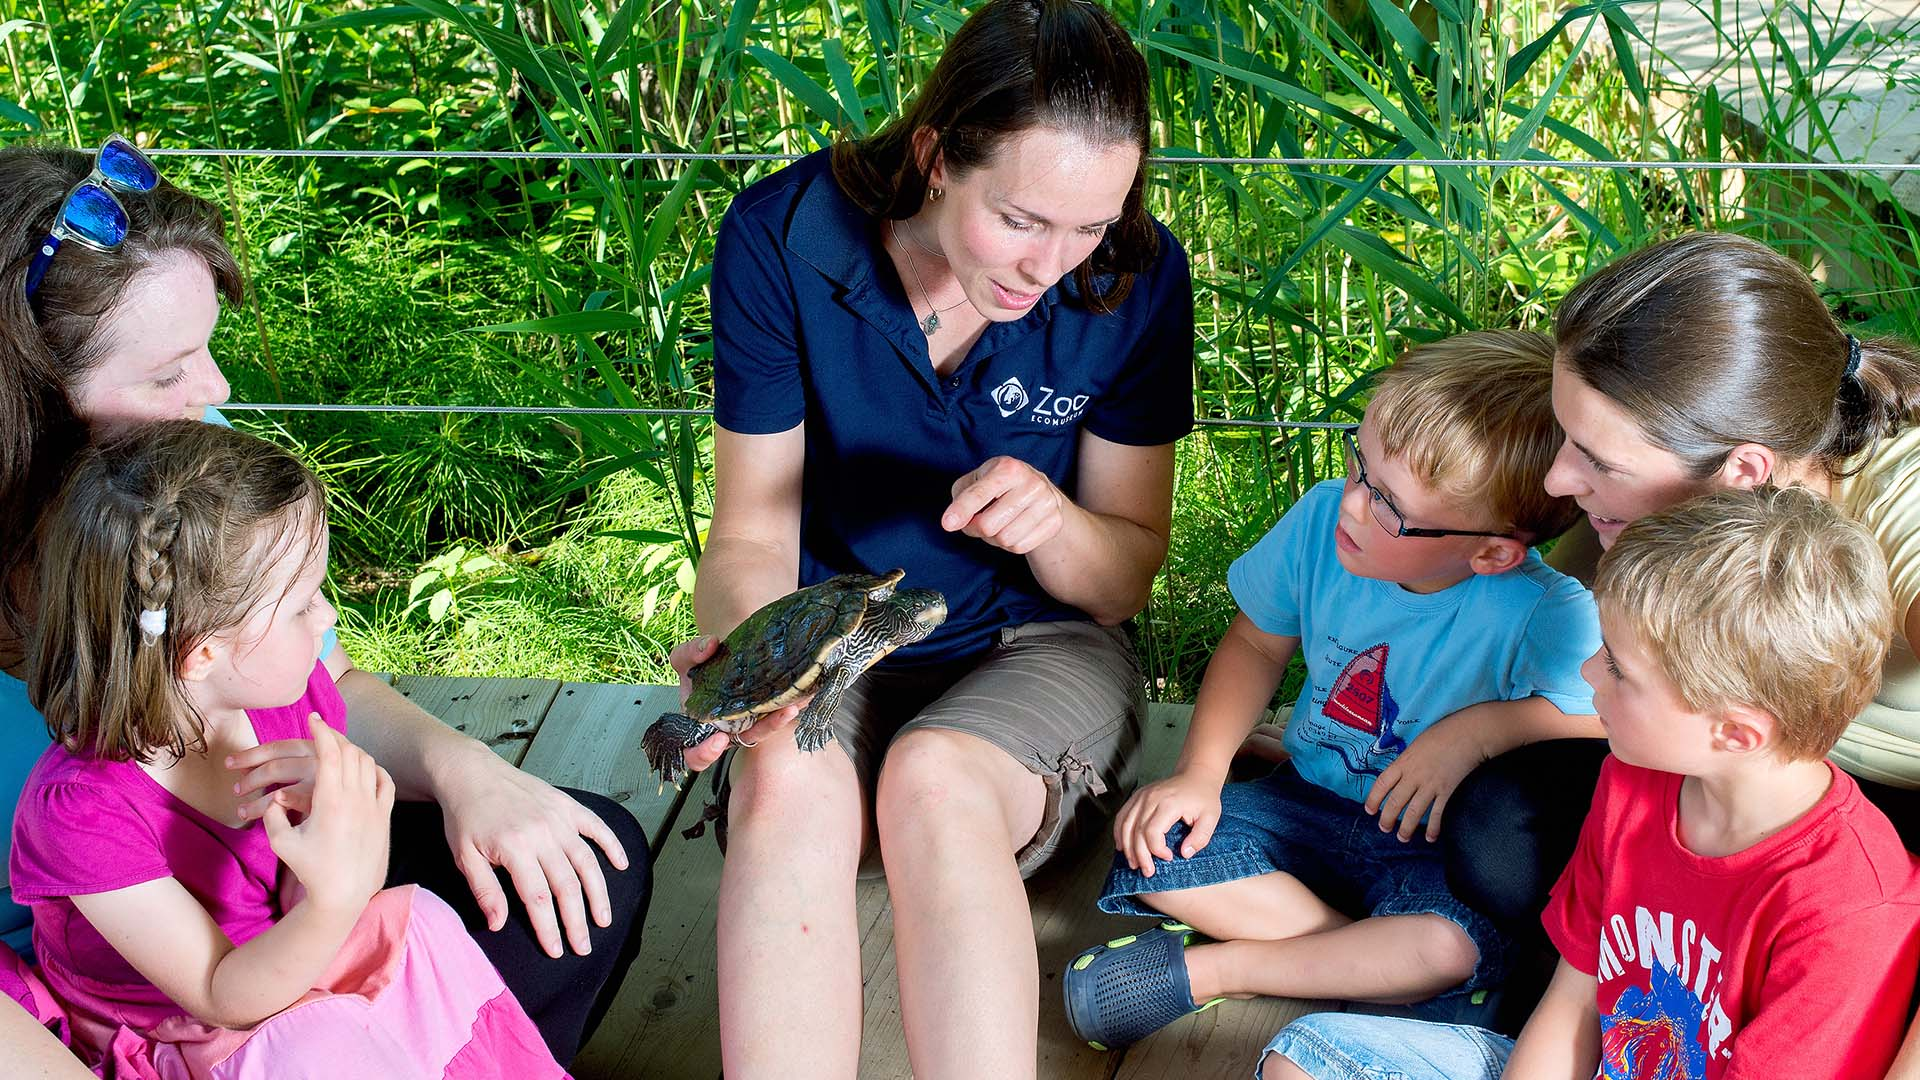 kids and parents sitting around a zookeeper holding a turtle during the Zookeeper-for-a-day activity at the Zoo Ecomuseum